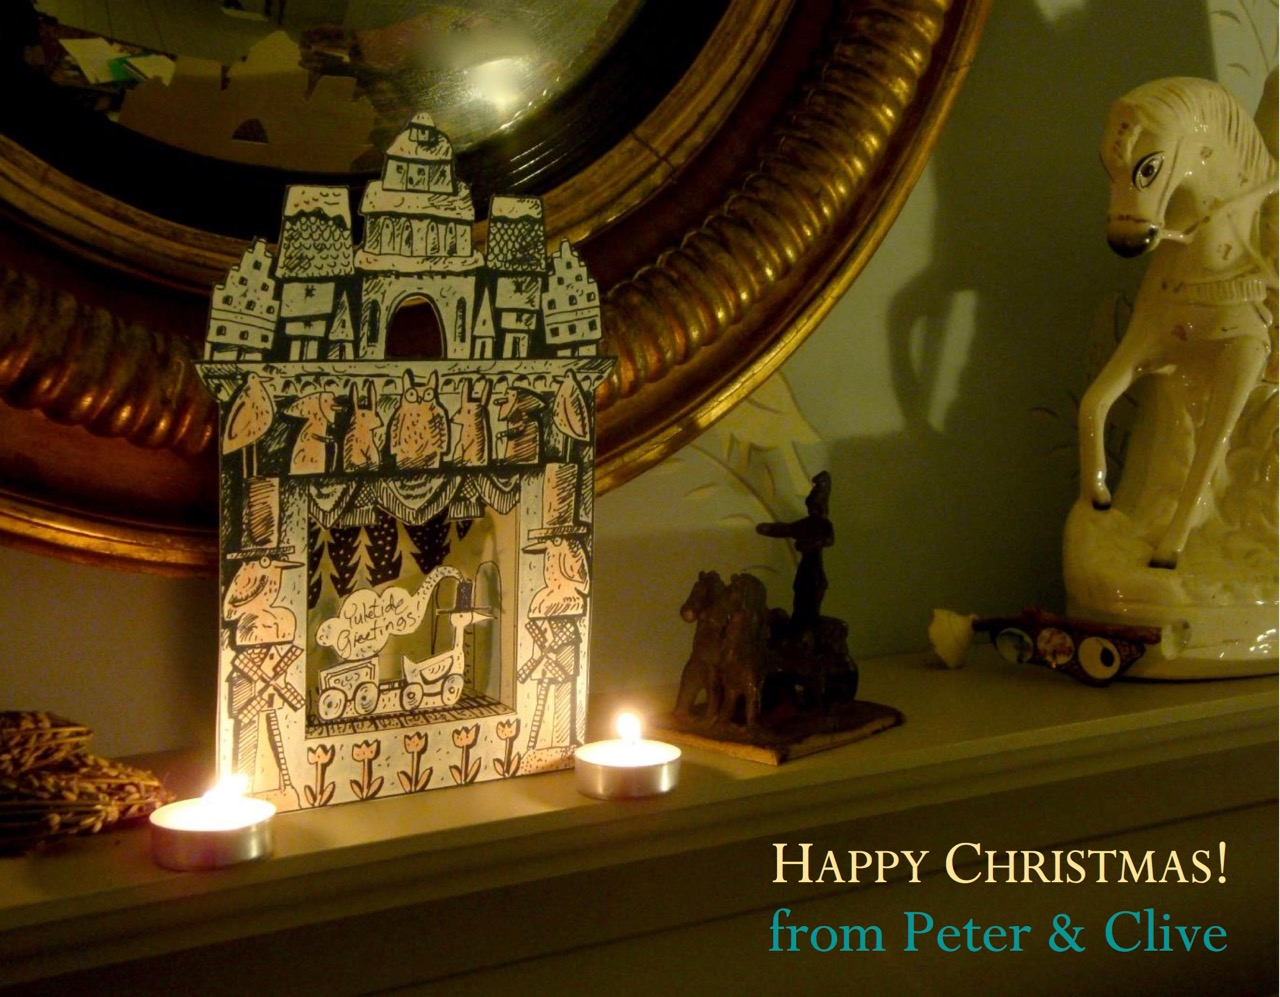 Happy Christmas 2016 from Peter & Clive (1).jpg